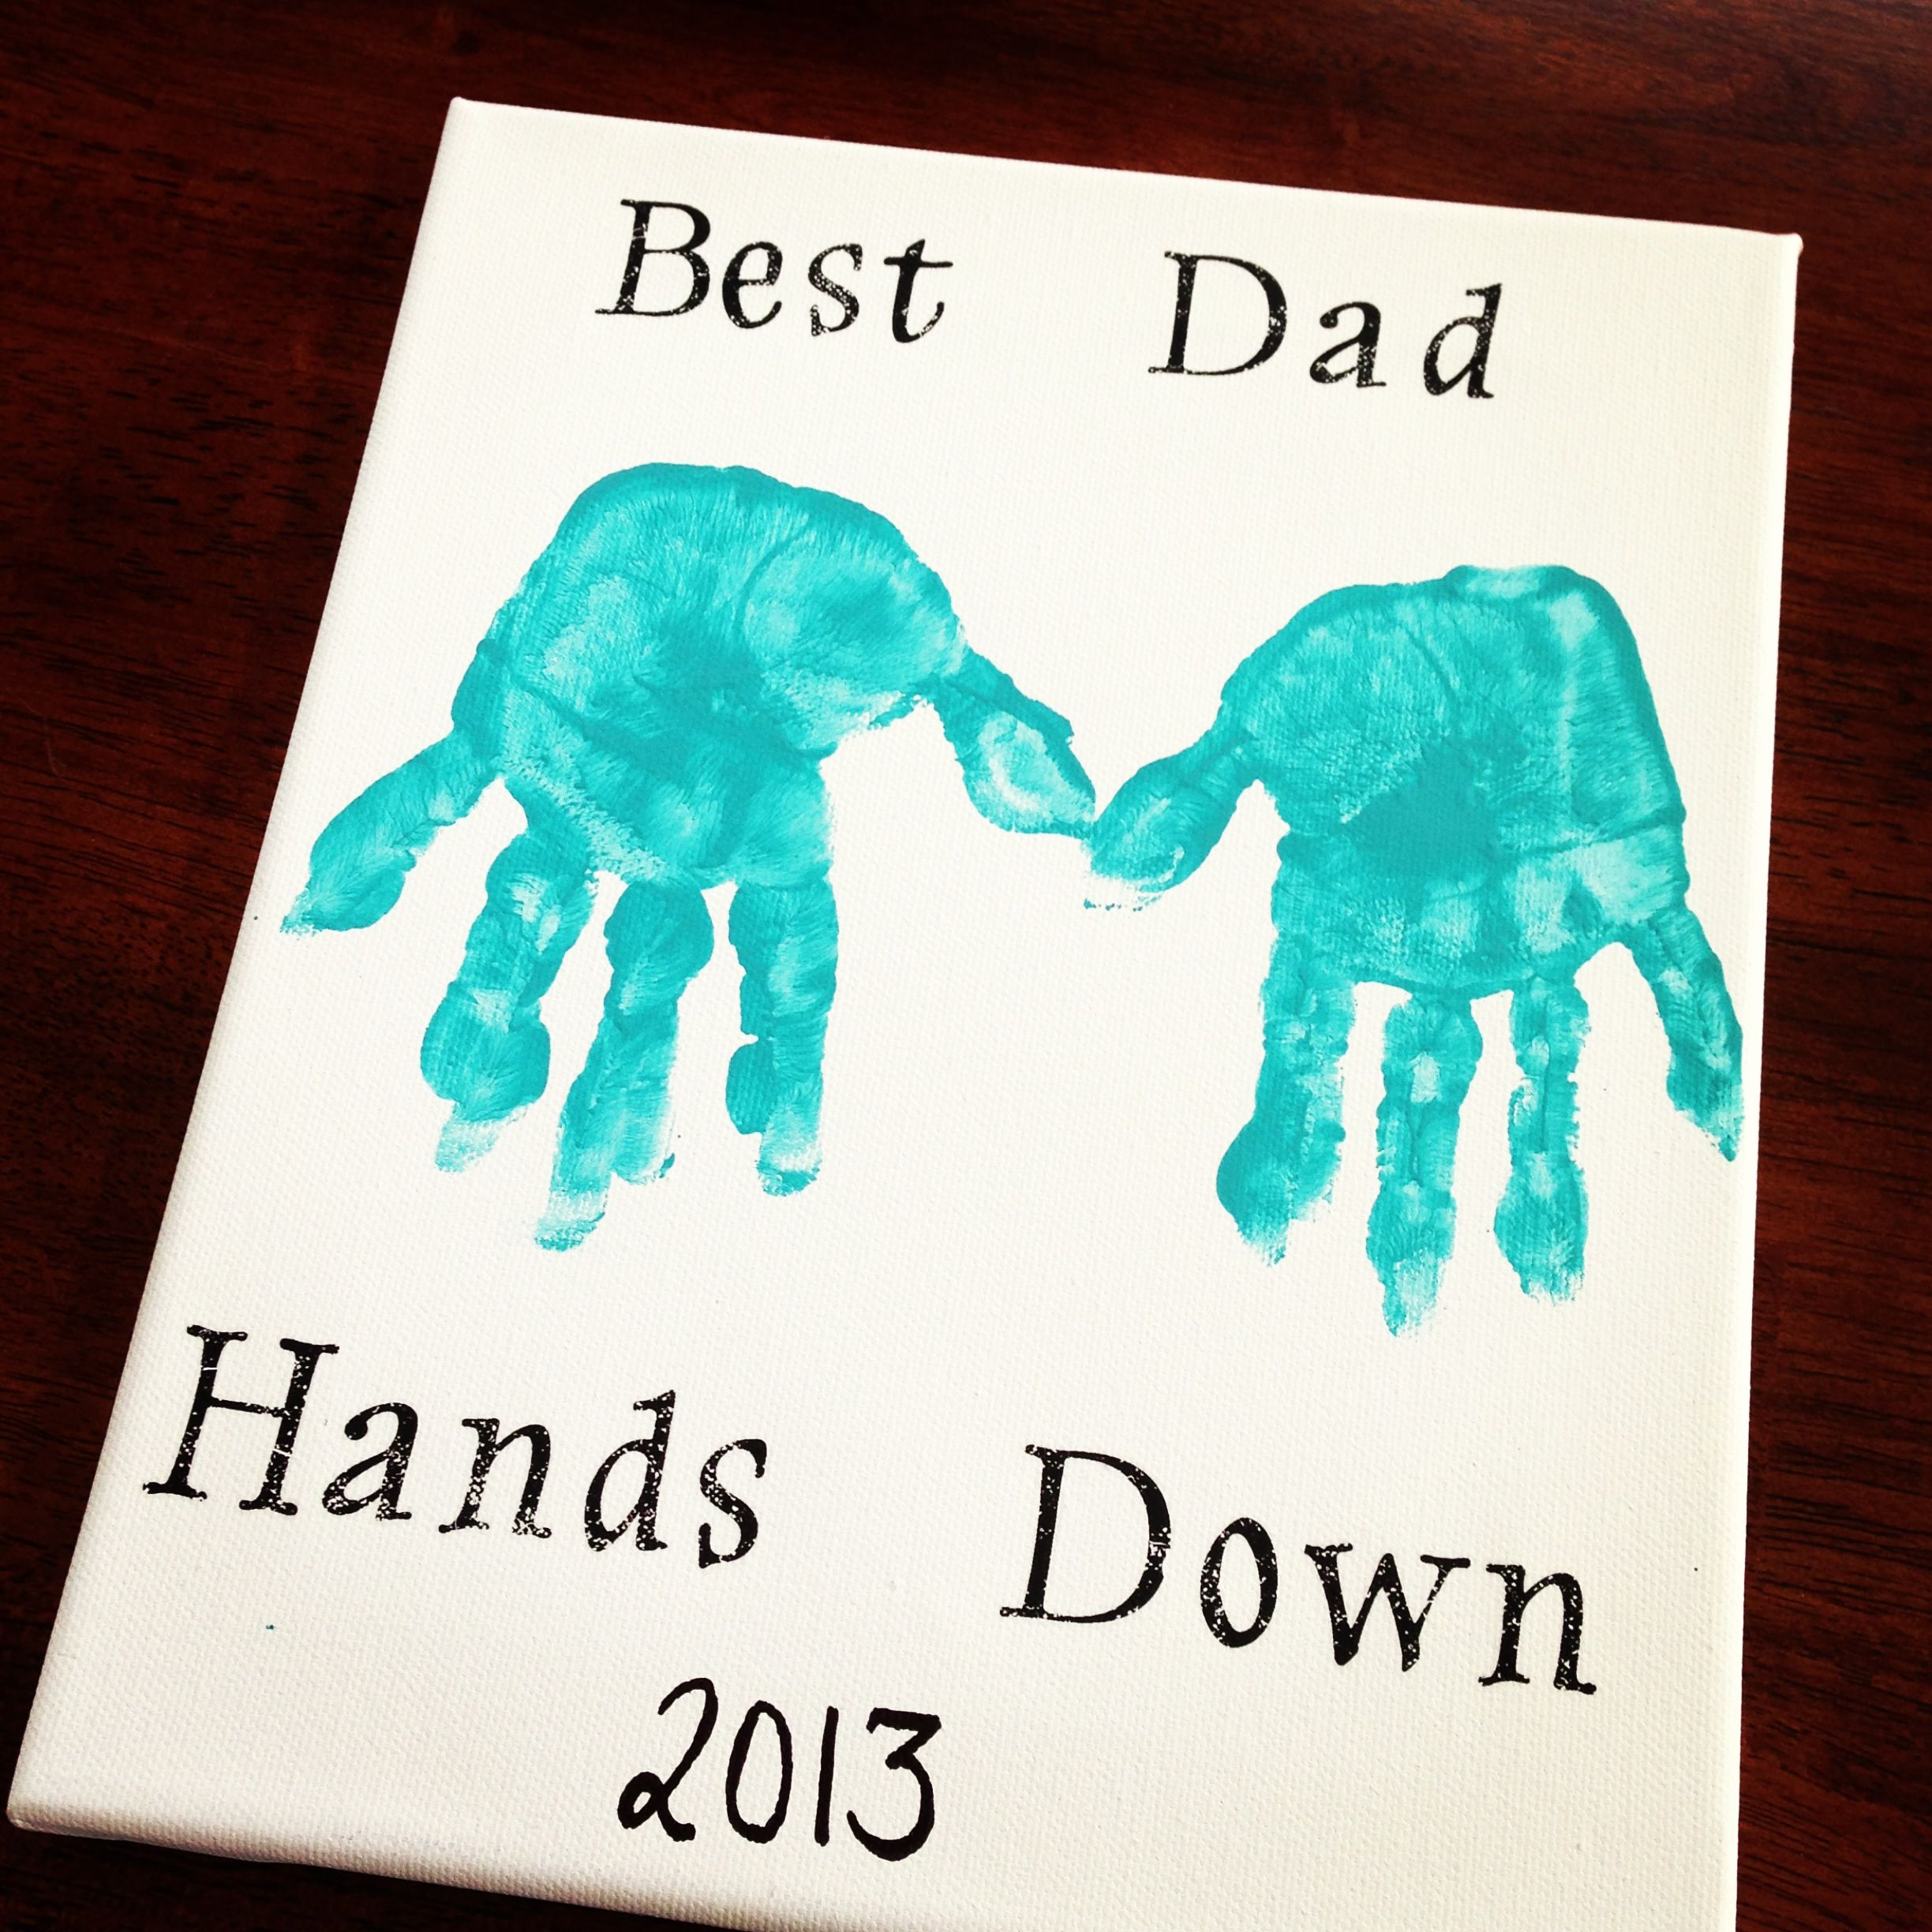 Easy Diy Birthday Gifts For Dad Father 39s Day Diy Canvas Art 8 Quot X 10 Quot Canvas Acrylic Paint